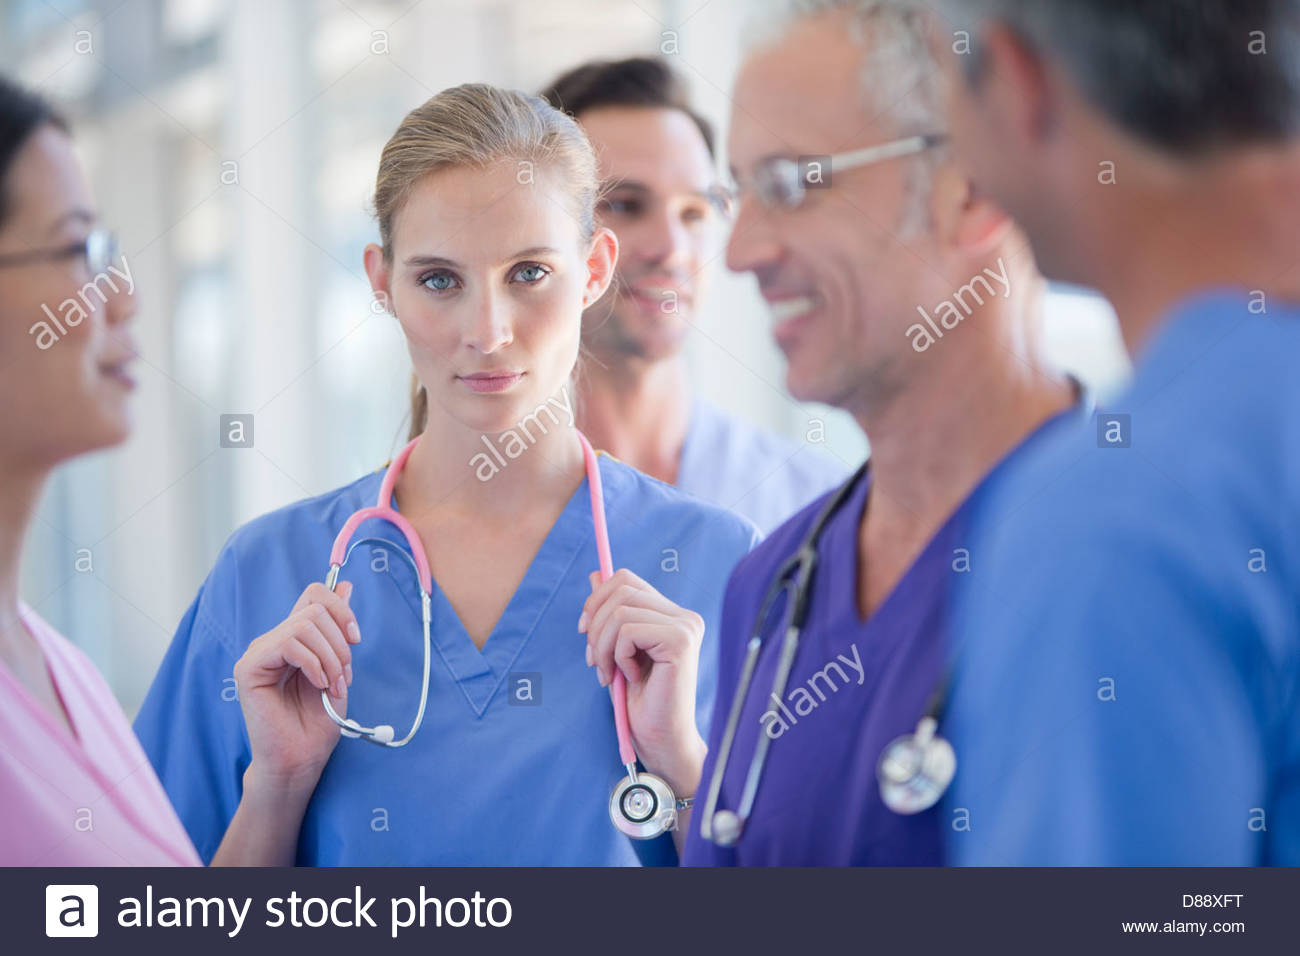 Portrait of serious doctor among co-workers Stock Photo